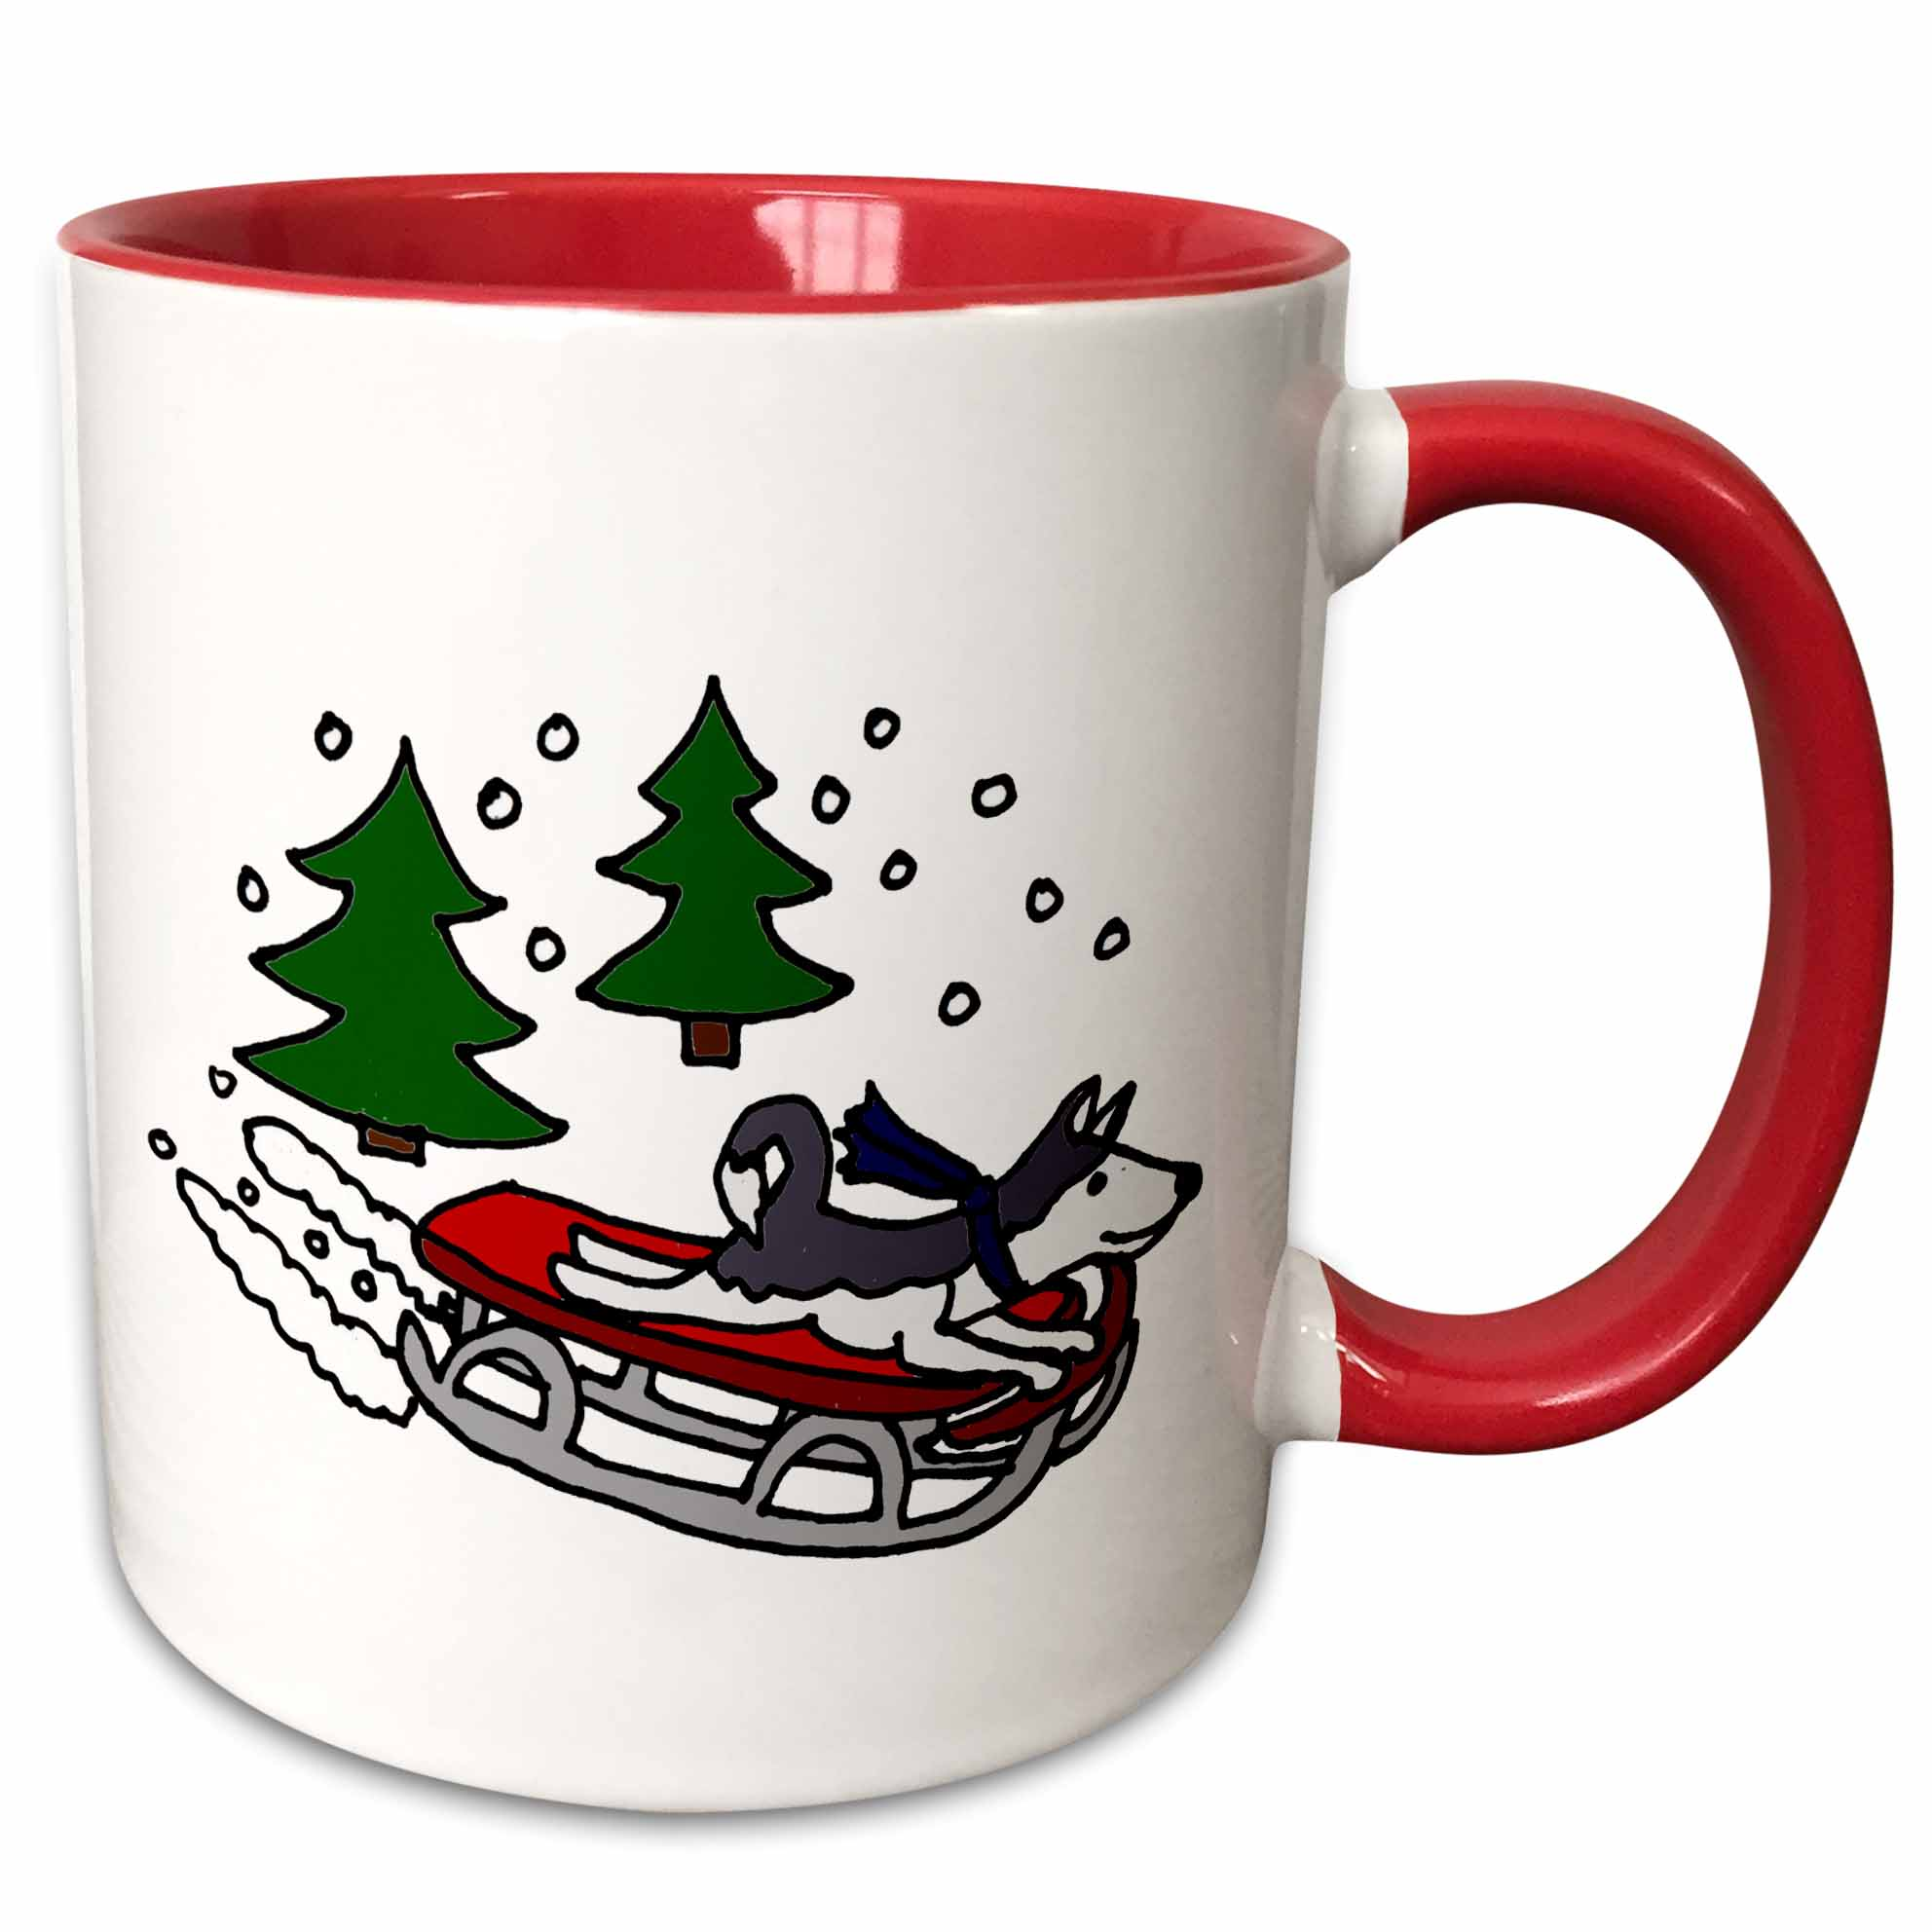 11 Ounce 3drose Snowmobile Rider Merry Christmas Ceramic Mug Home Kitchen Dining Entertaining